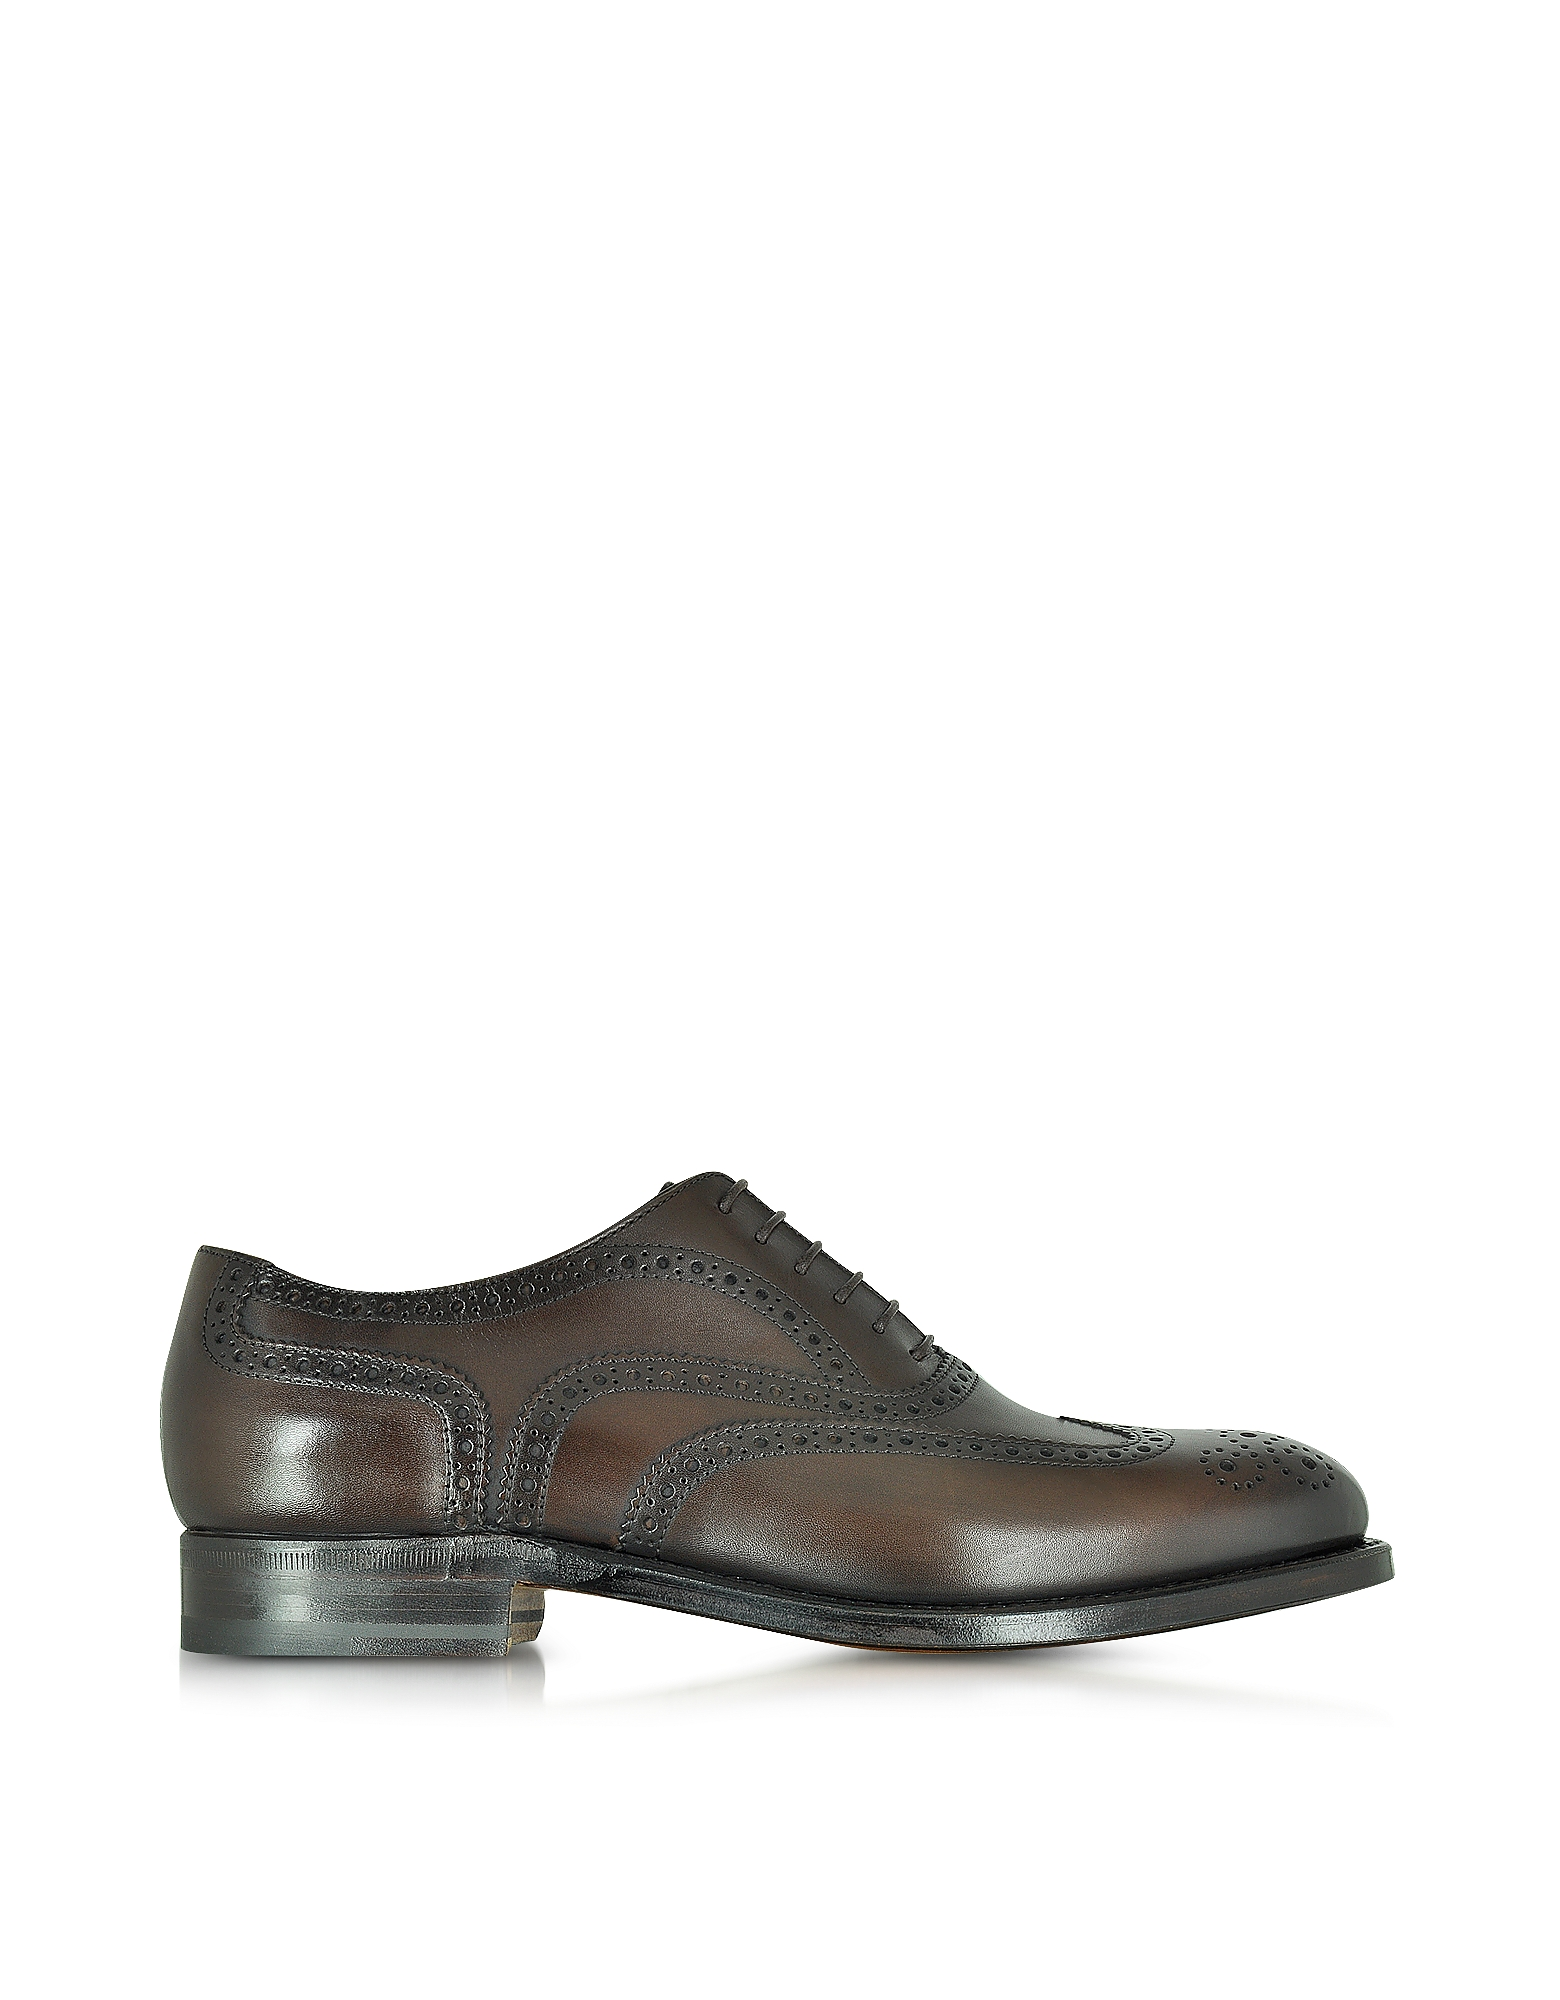 Moreschi Shoes, Windsor Dark Brown Leather Wingtip Oxford Shoe